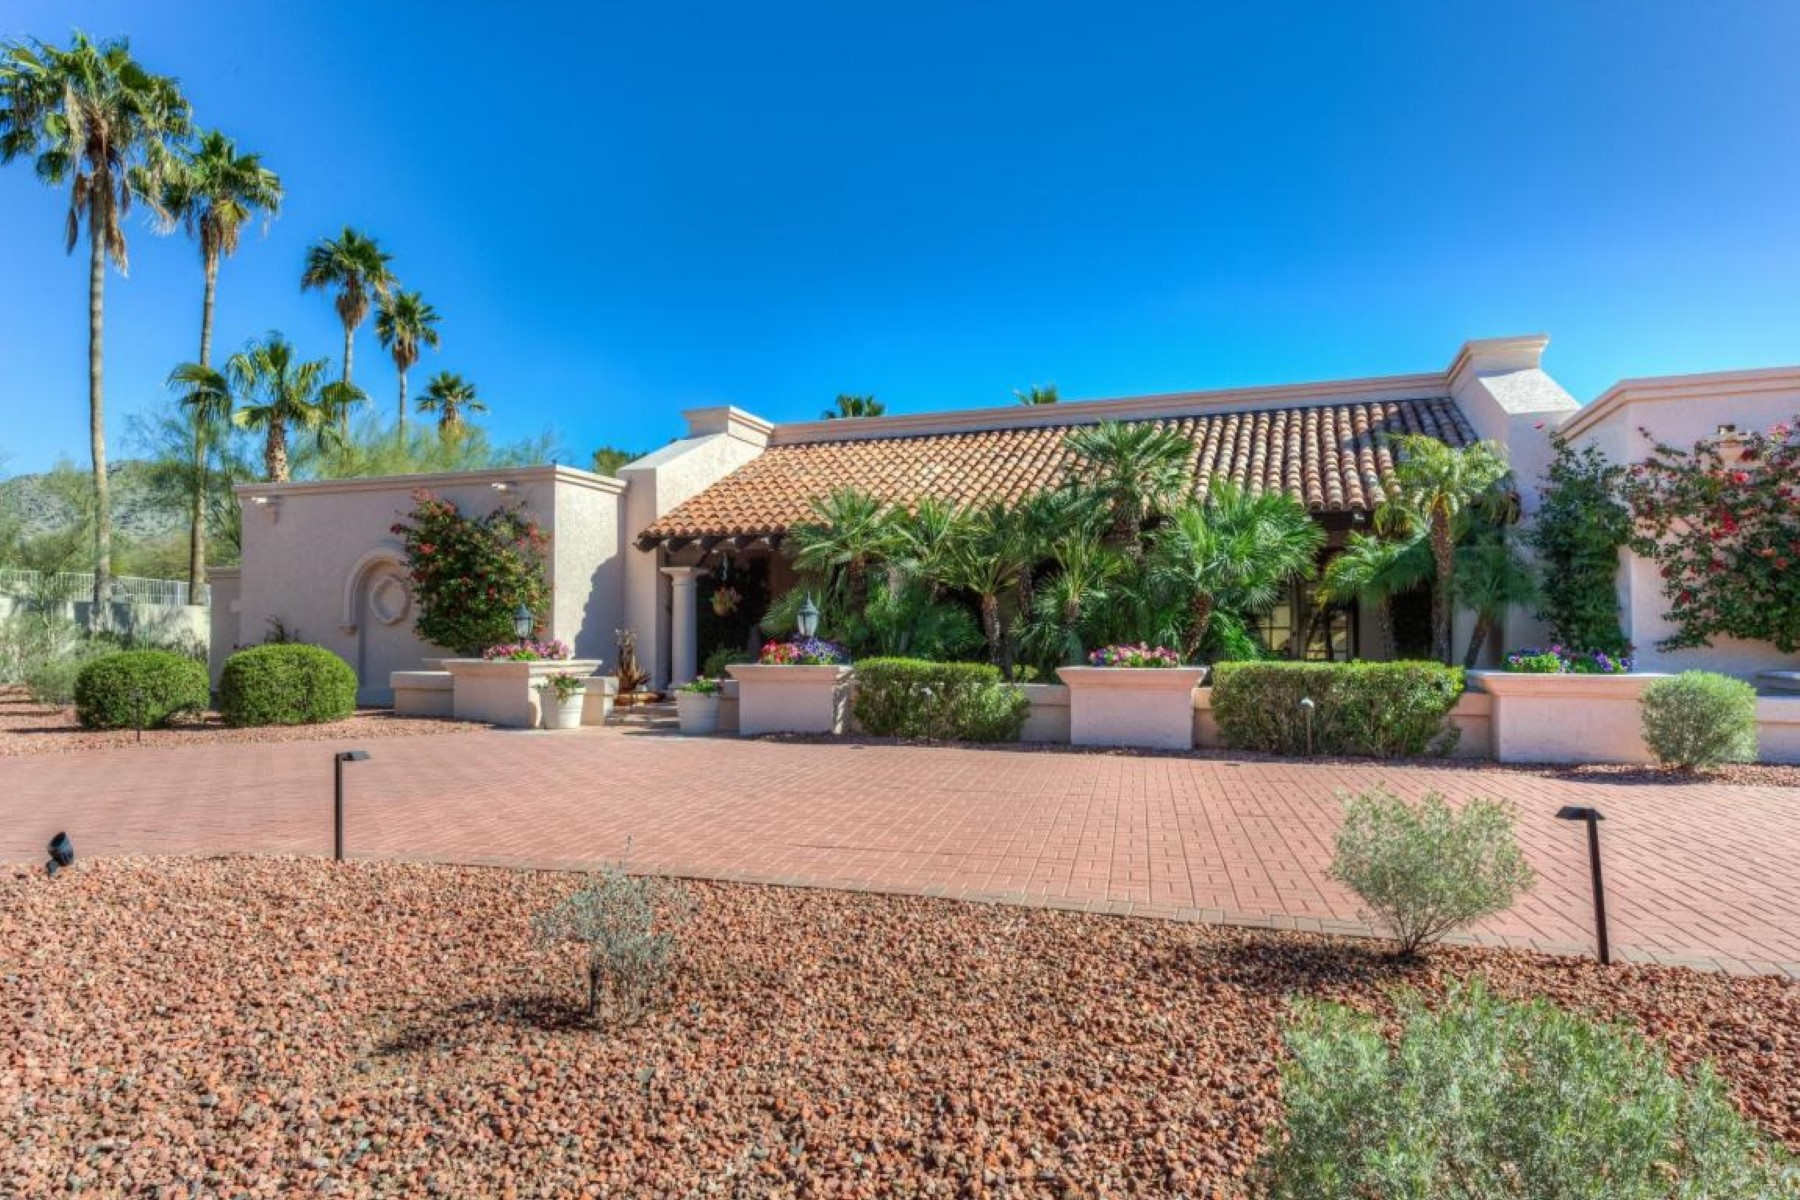 Single Family Home for Sale at Charming home in Paradise Valley 6101 N 33rd St Paradise Valley, Arizona, 85253 United States